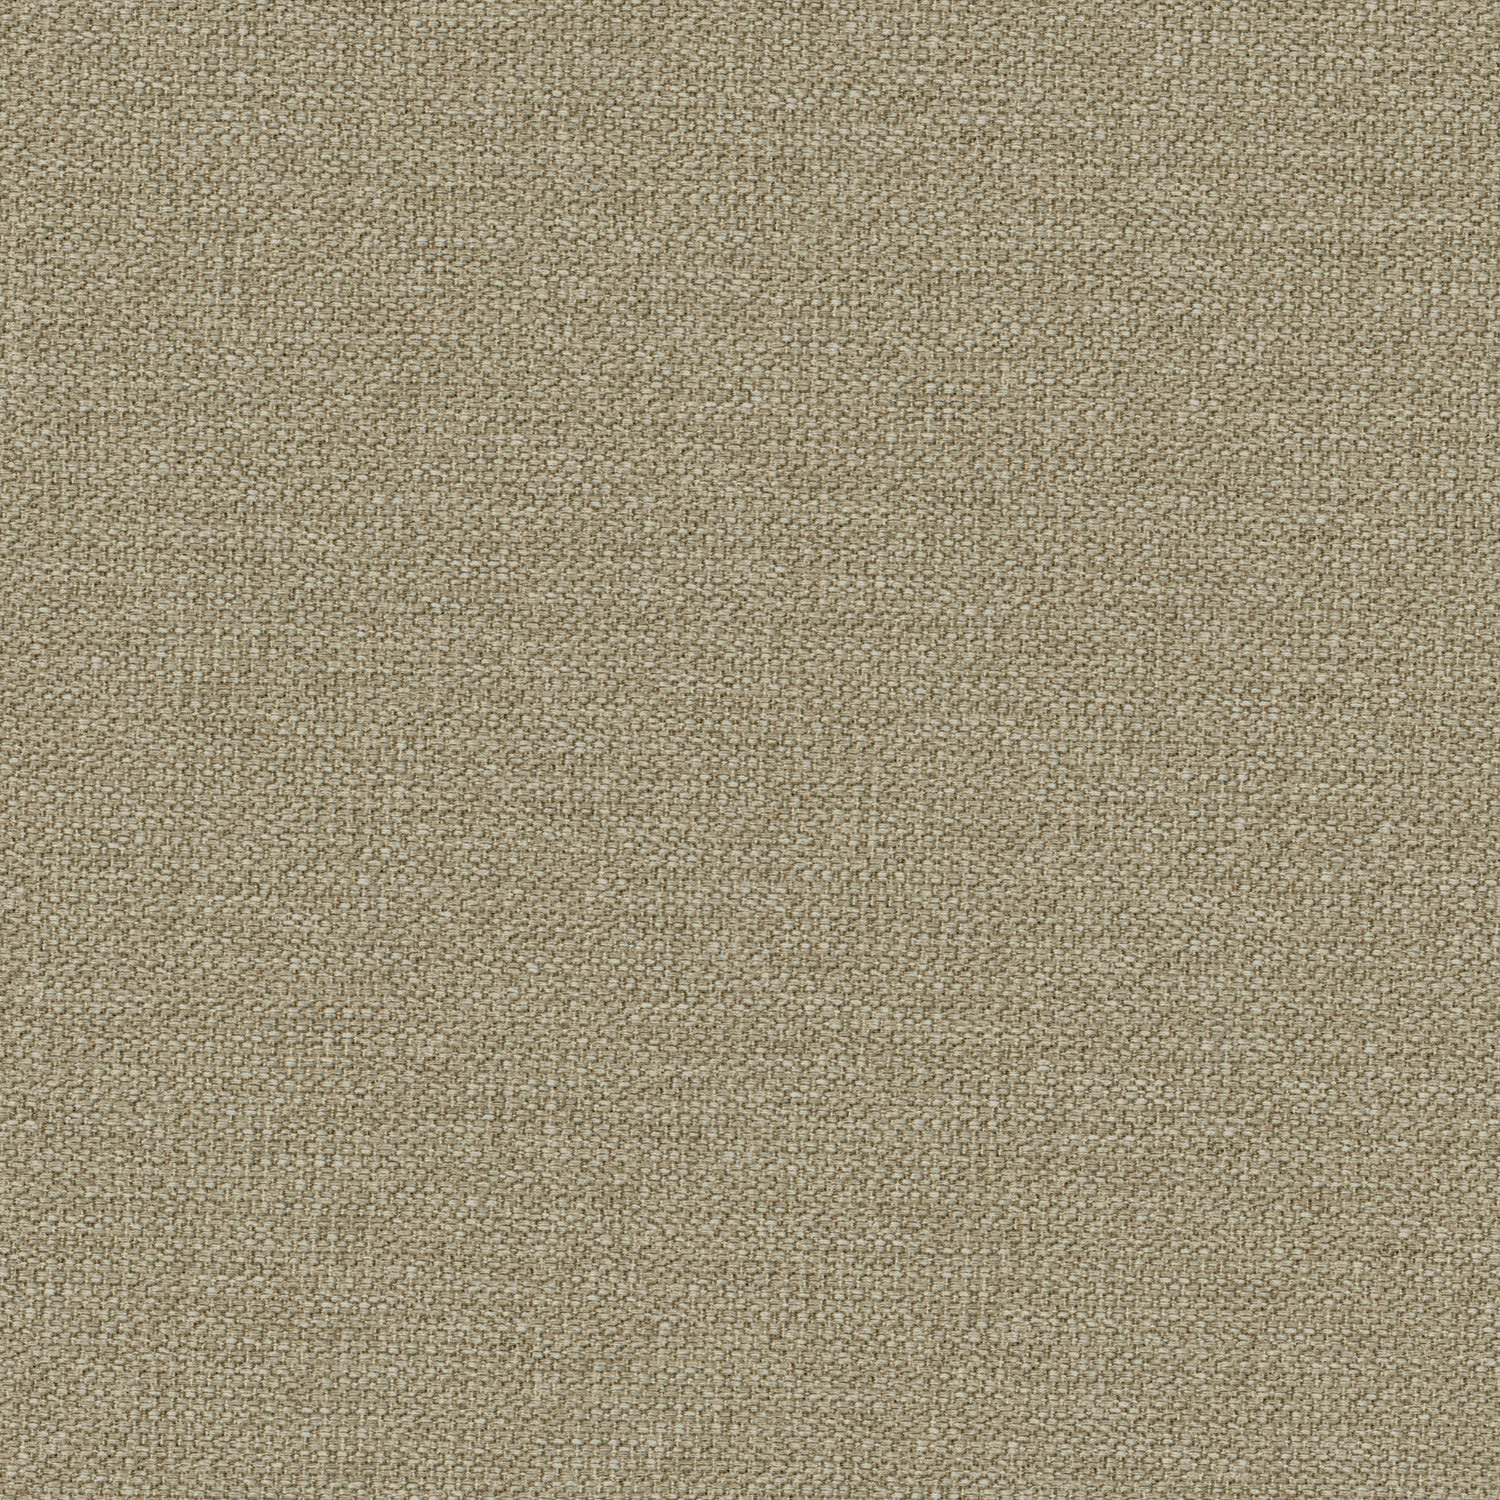 Plain neutral washable cotton fabric for furnishings and curtains